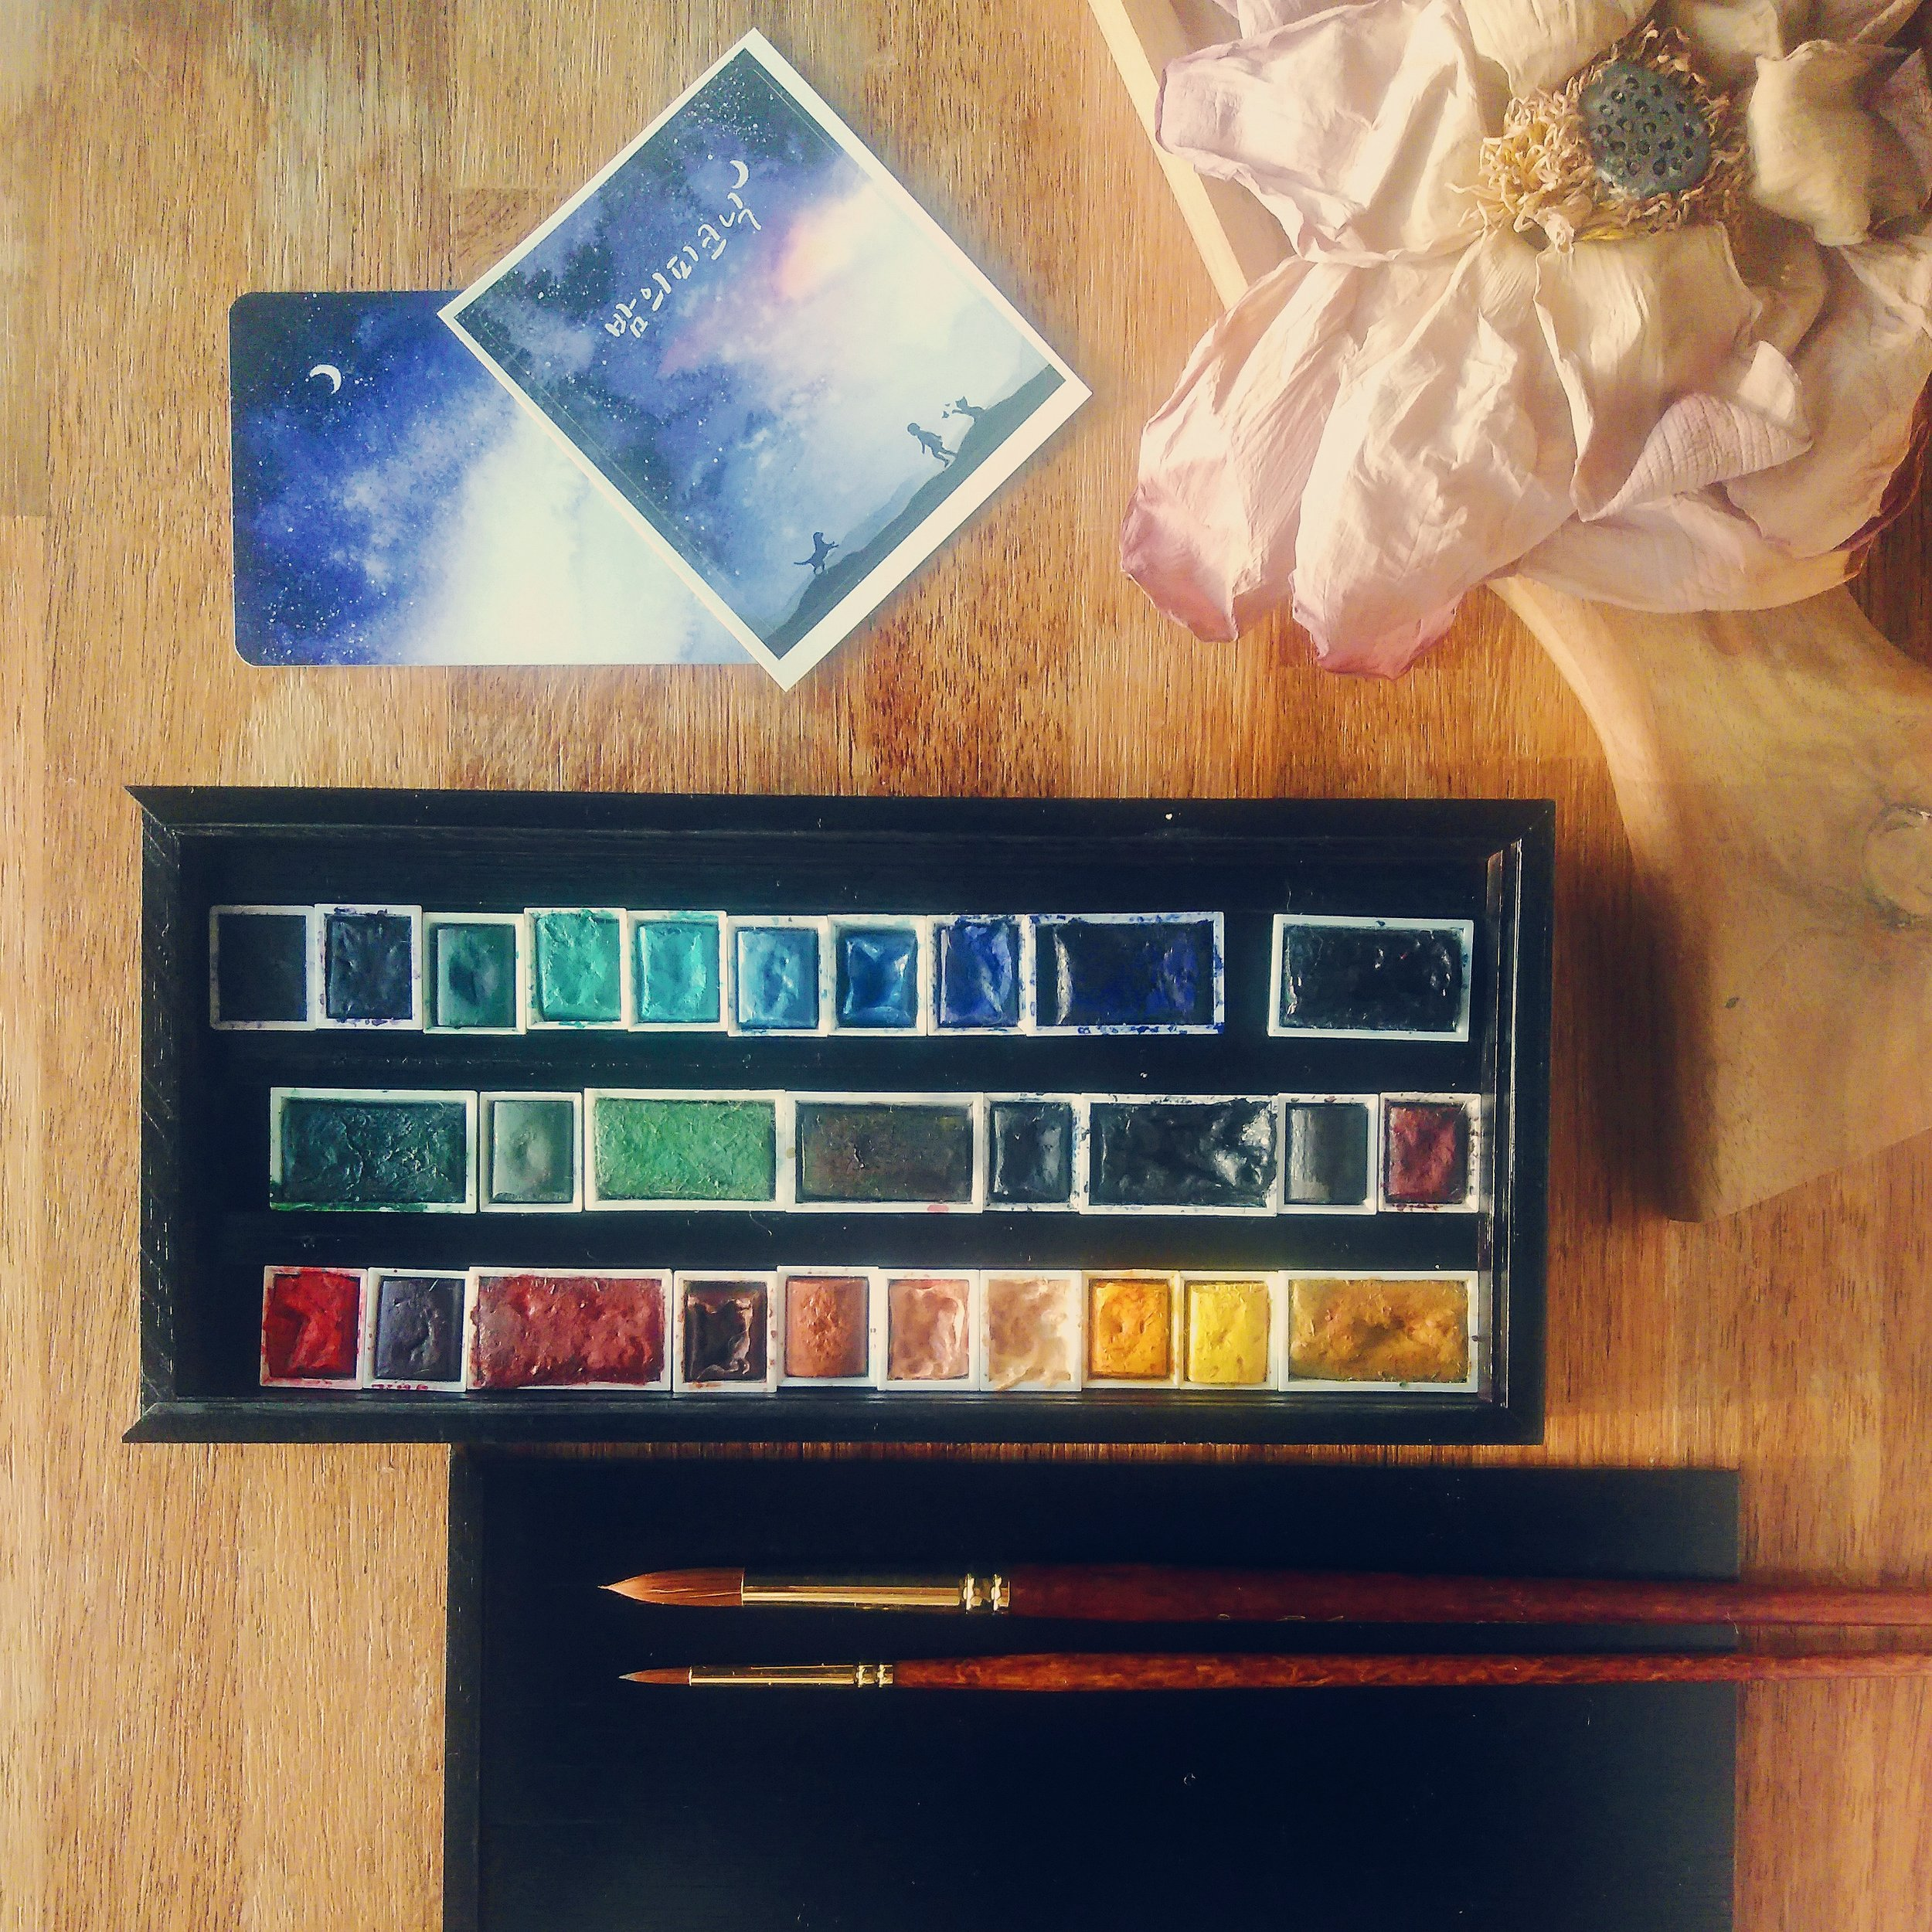 My Winsor & Newton watercolor pans got a new home in this wooden case! The old metal case I'd originally gotten these in had gotten really battered over the last two decades (it was second hand) and I longed for something more minimalist and, to be honest, Instagram picture friendly. :)